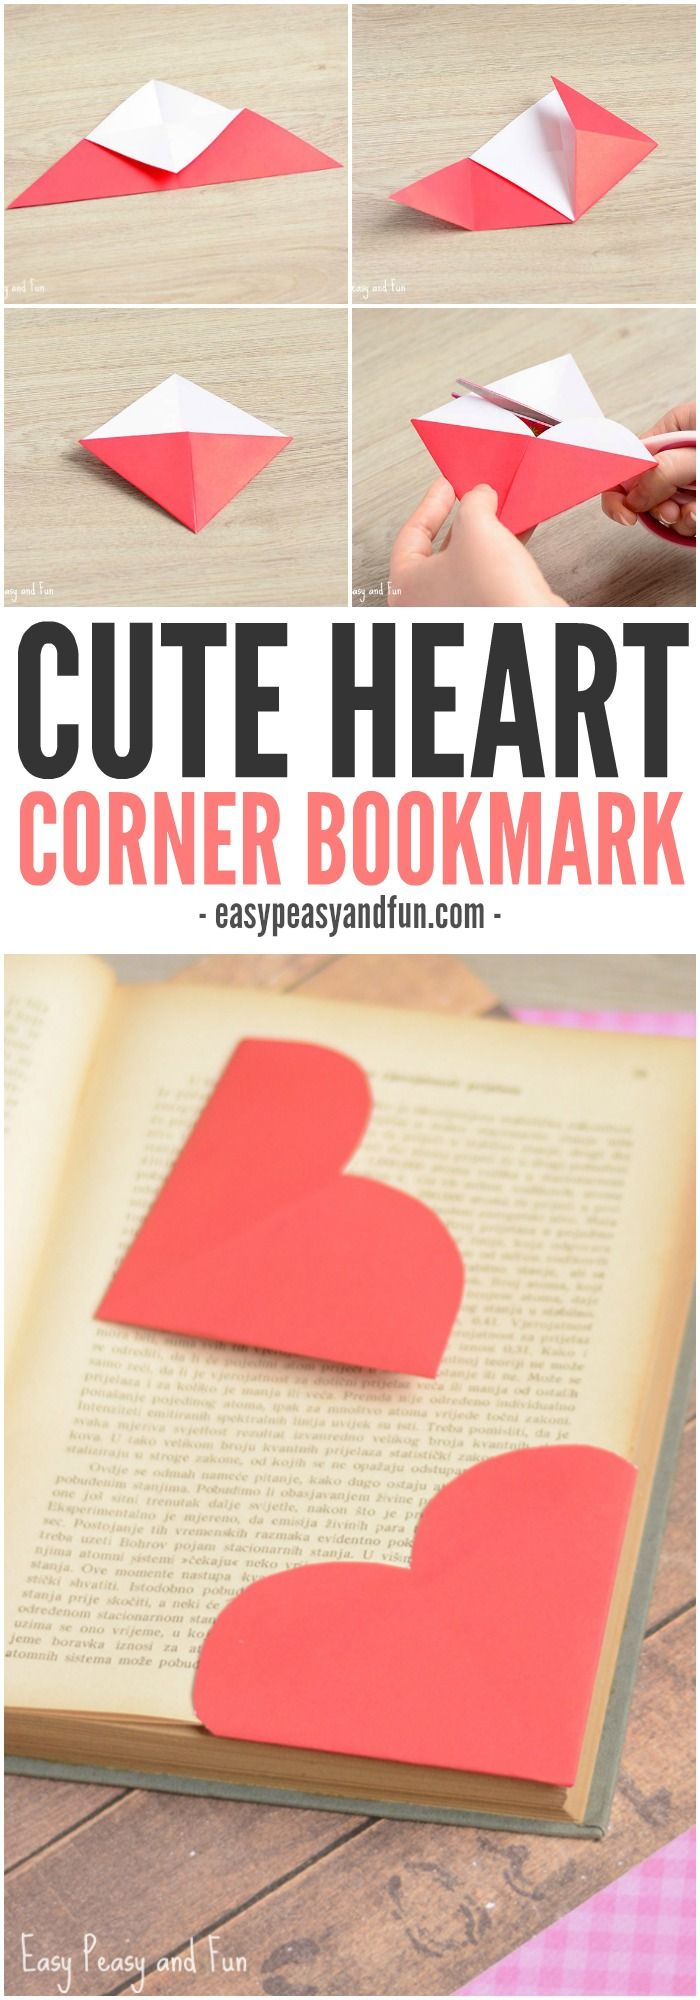 best 25 heart crafts ideas on pinterest valentines day crafts for preschoolers kids valentine image and simple diy fathers day gifts - Valentines Day Book